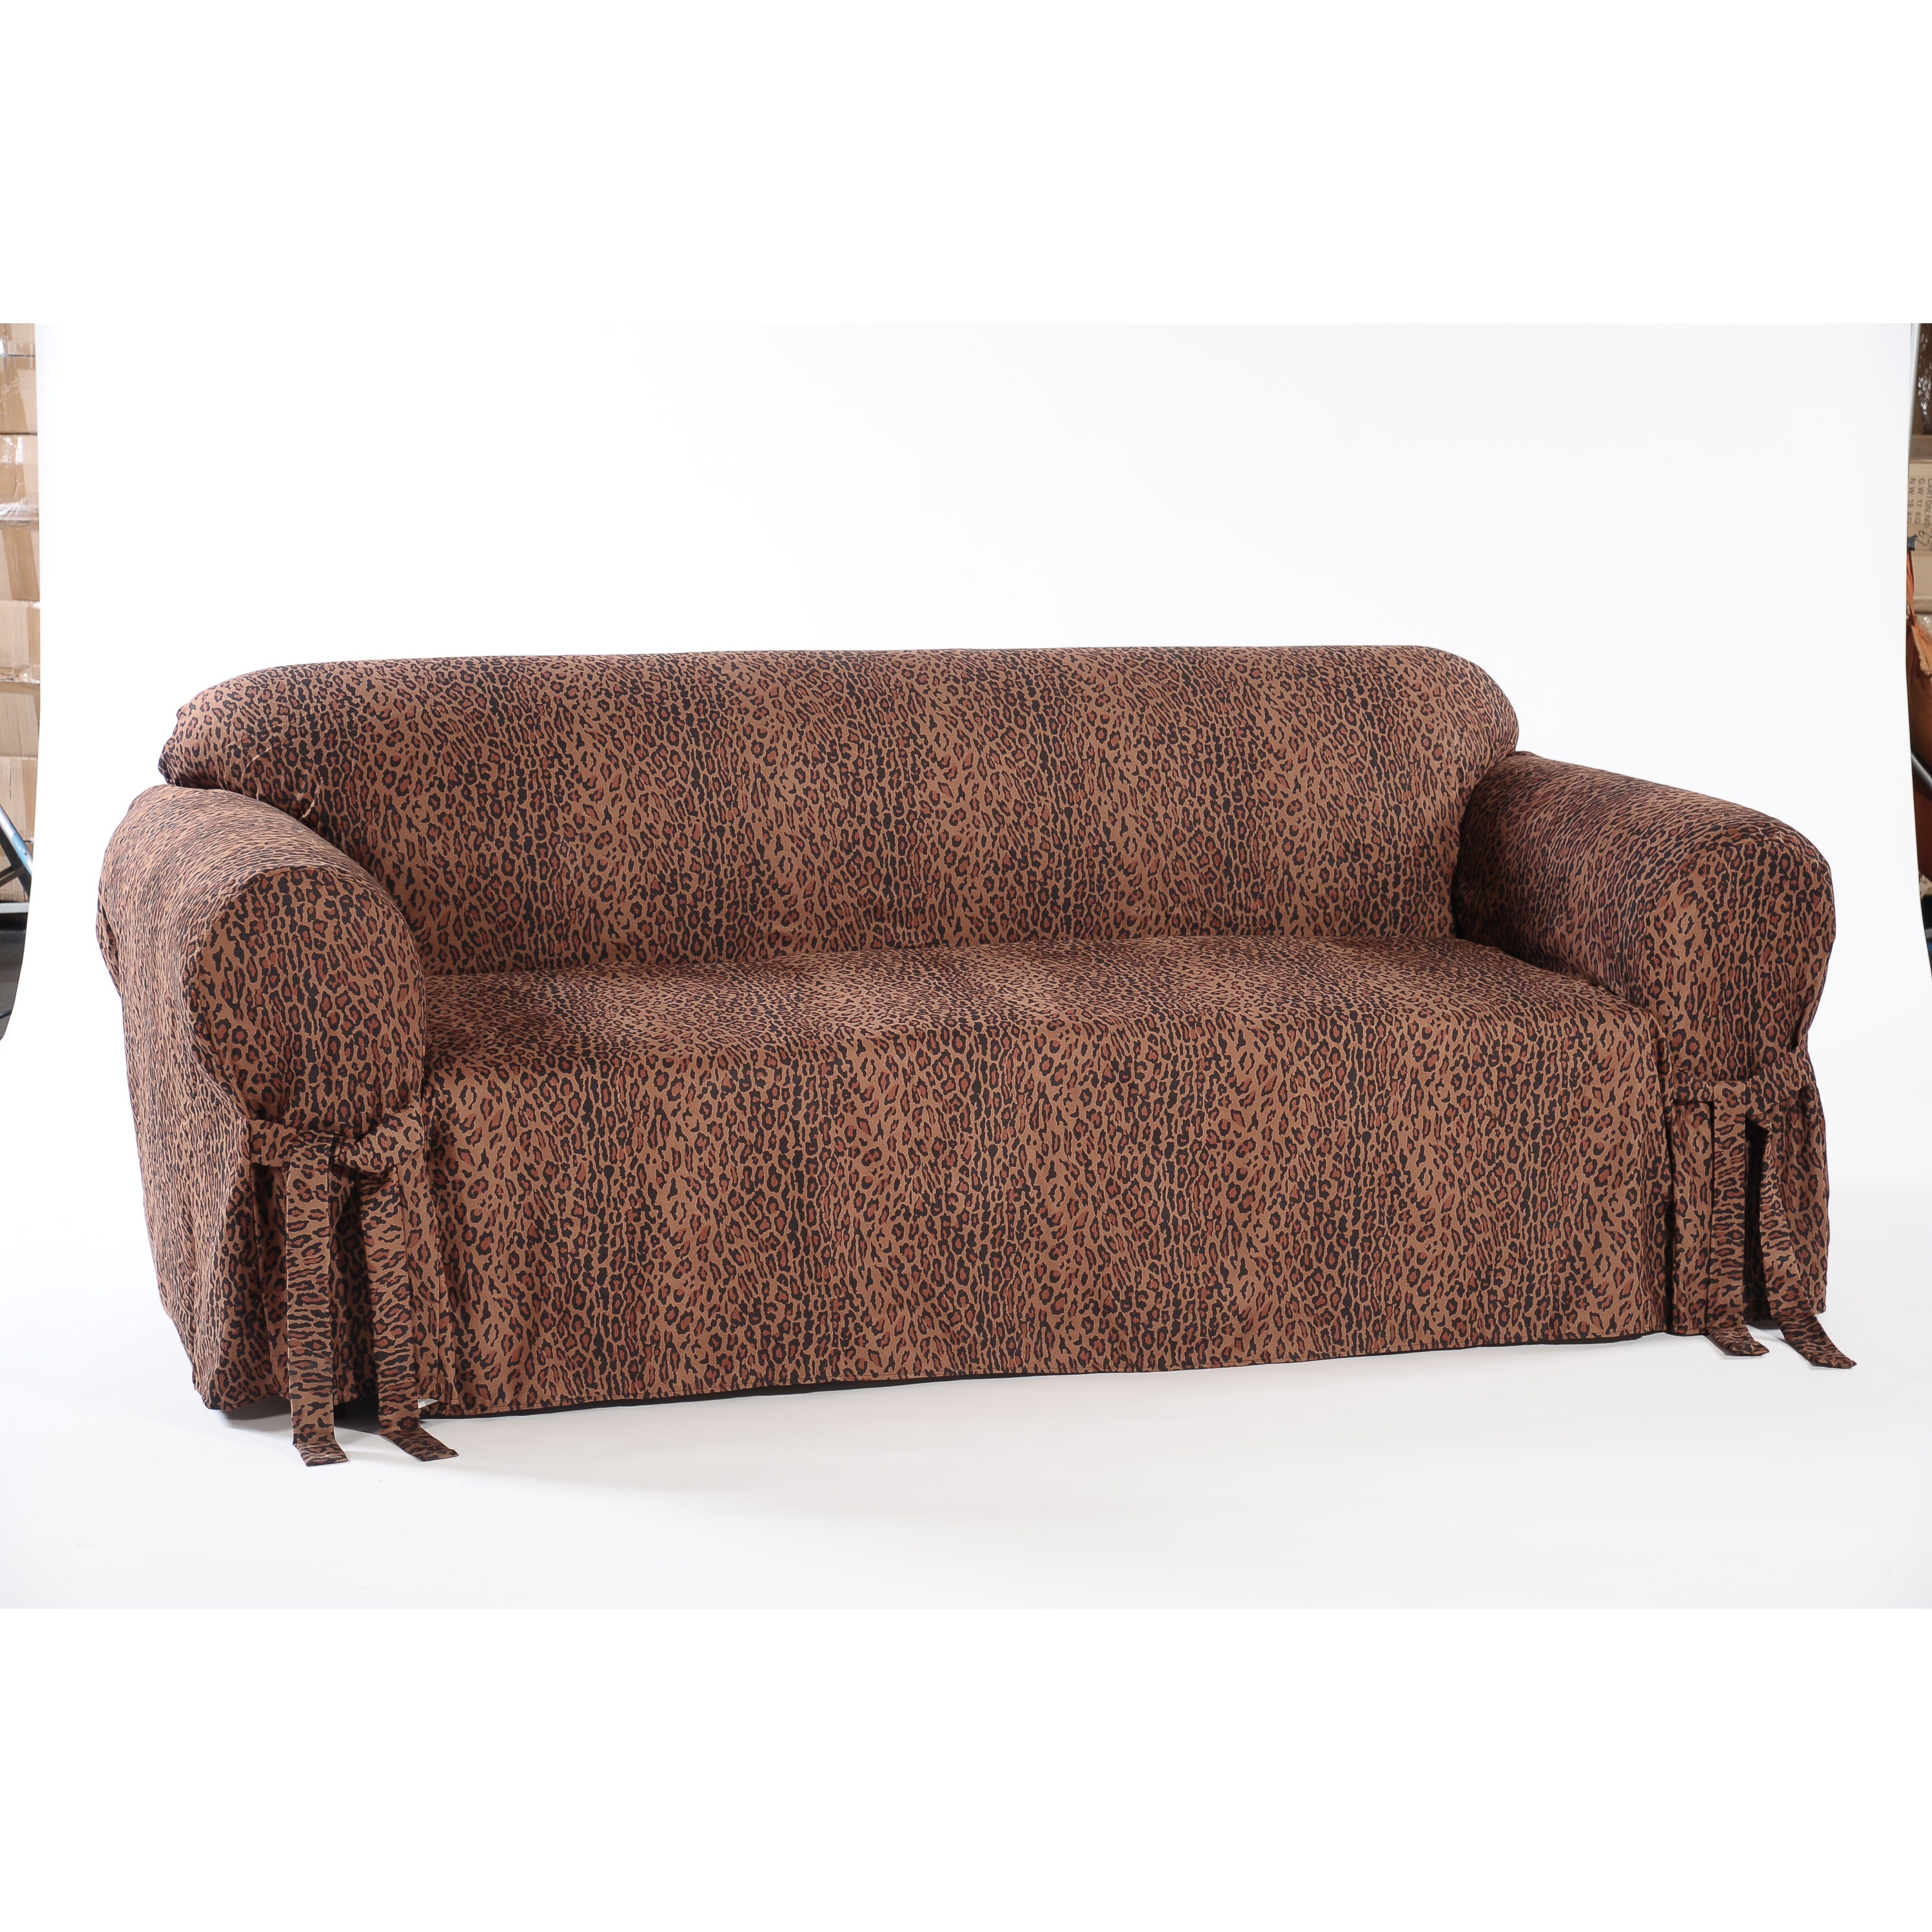 Classic Slipcovers Leopard Print Loveseat Slipcover Wayfair